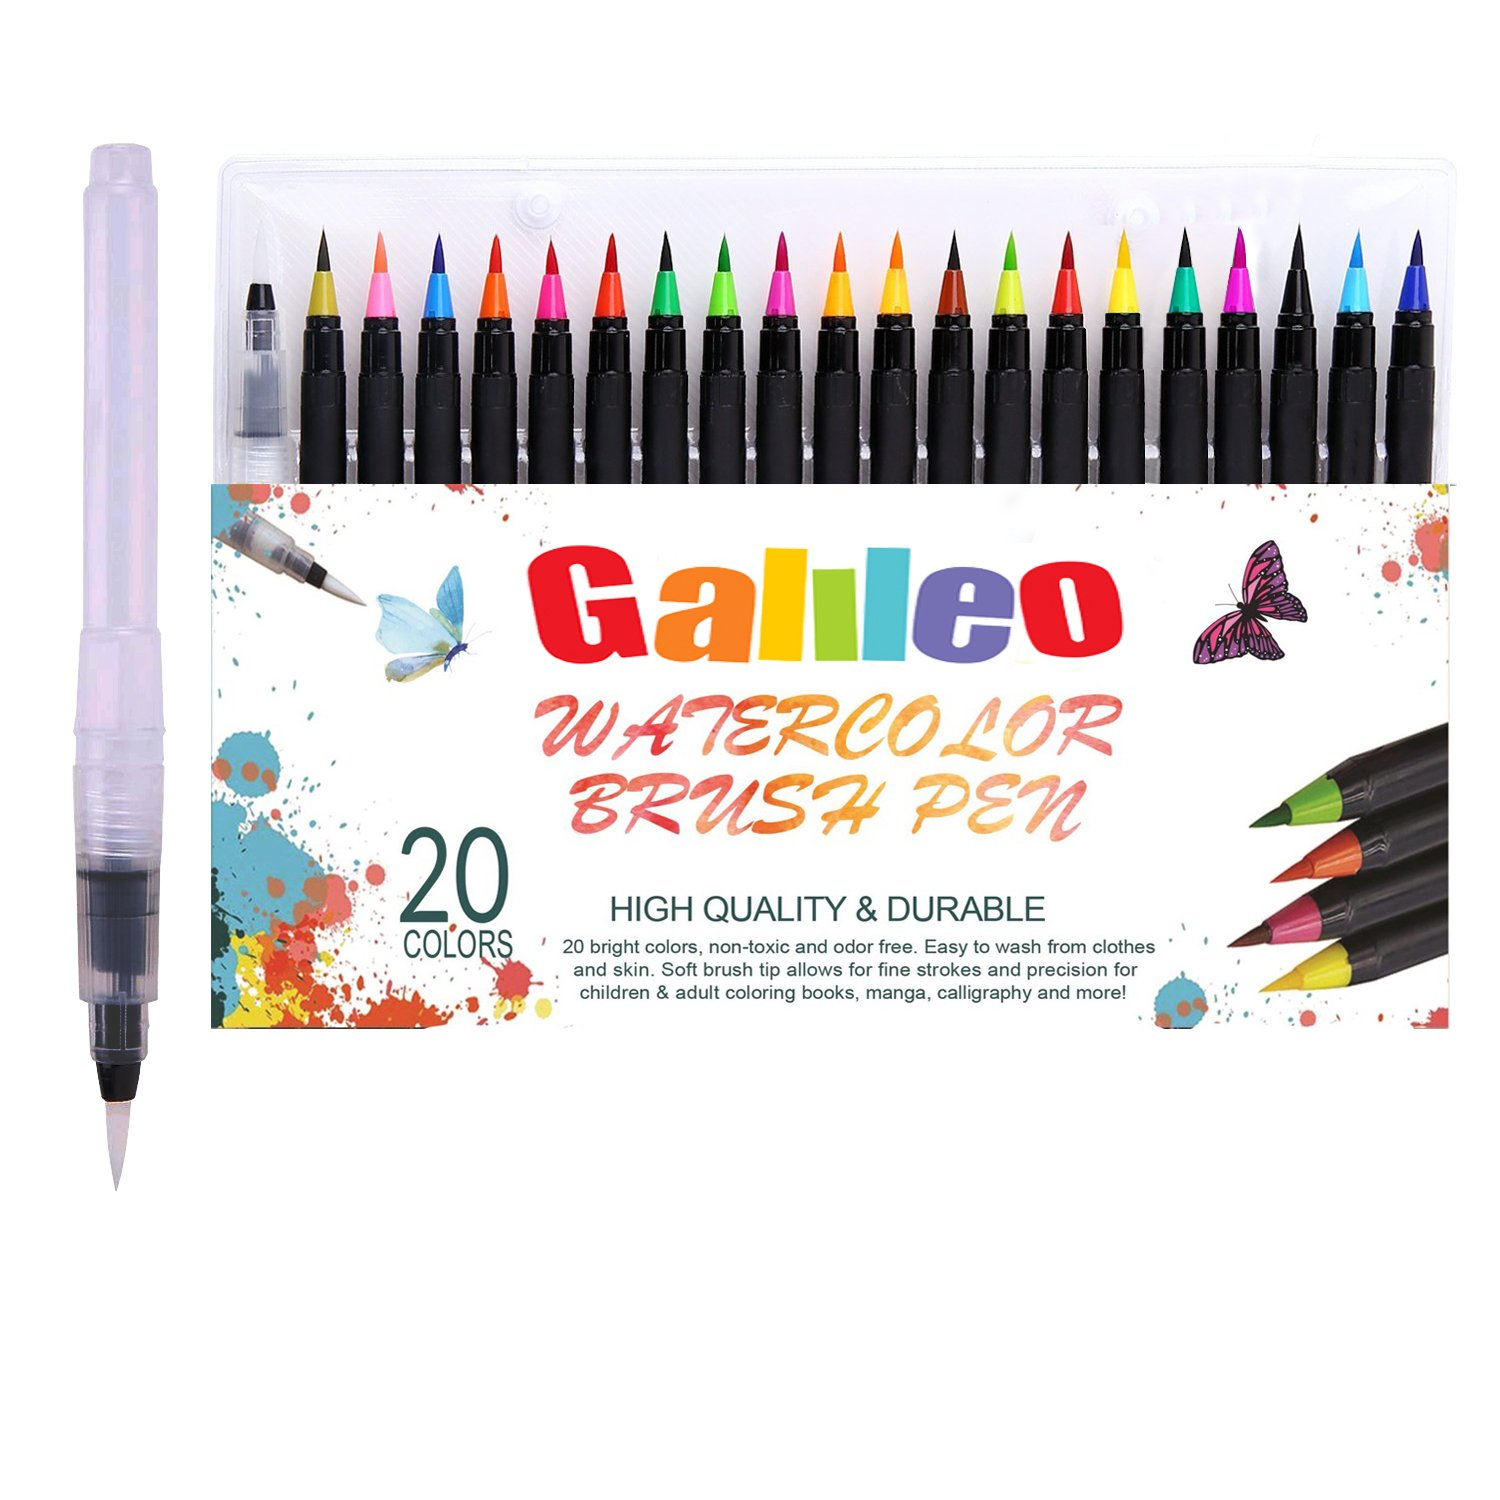 Watercolor Brush Pens Set – Pack of 20 Water-Based Coloring Markers for Kids and Adult with Real Flexible Brush Tips for Drawing, Painting, Manga, Calligraphy –Nontoxic, Washable & Odorless by Galileo Calligraphy –Nontoxic Galileo Toyz